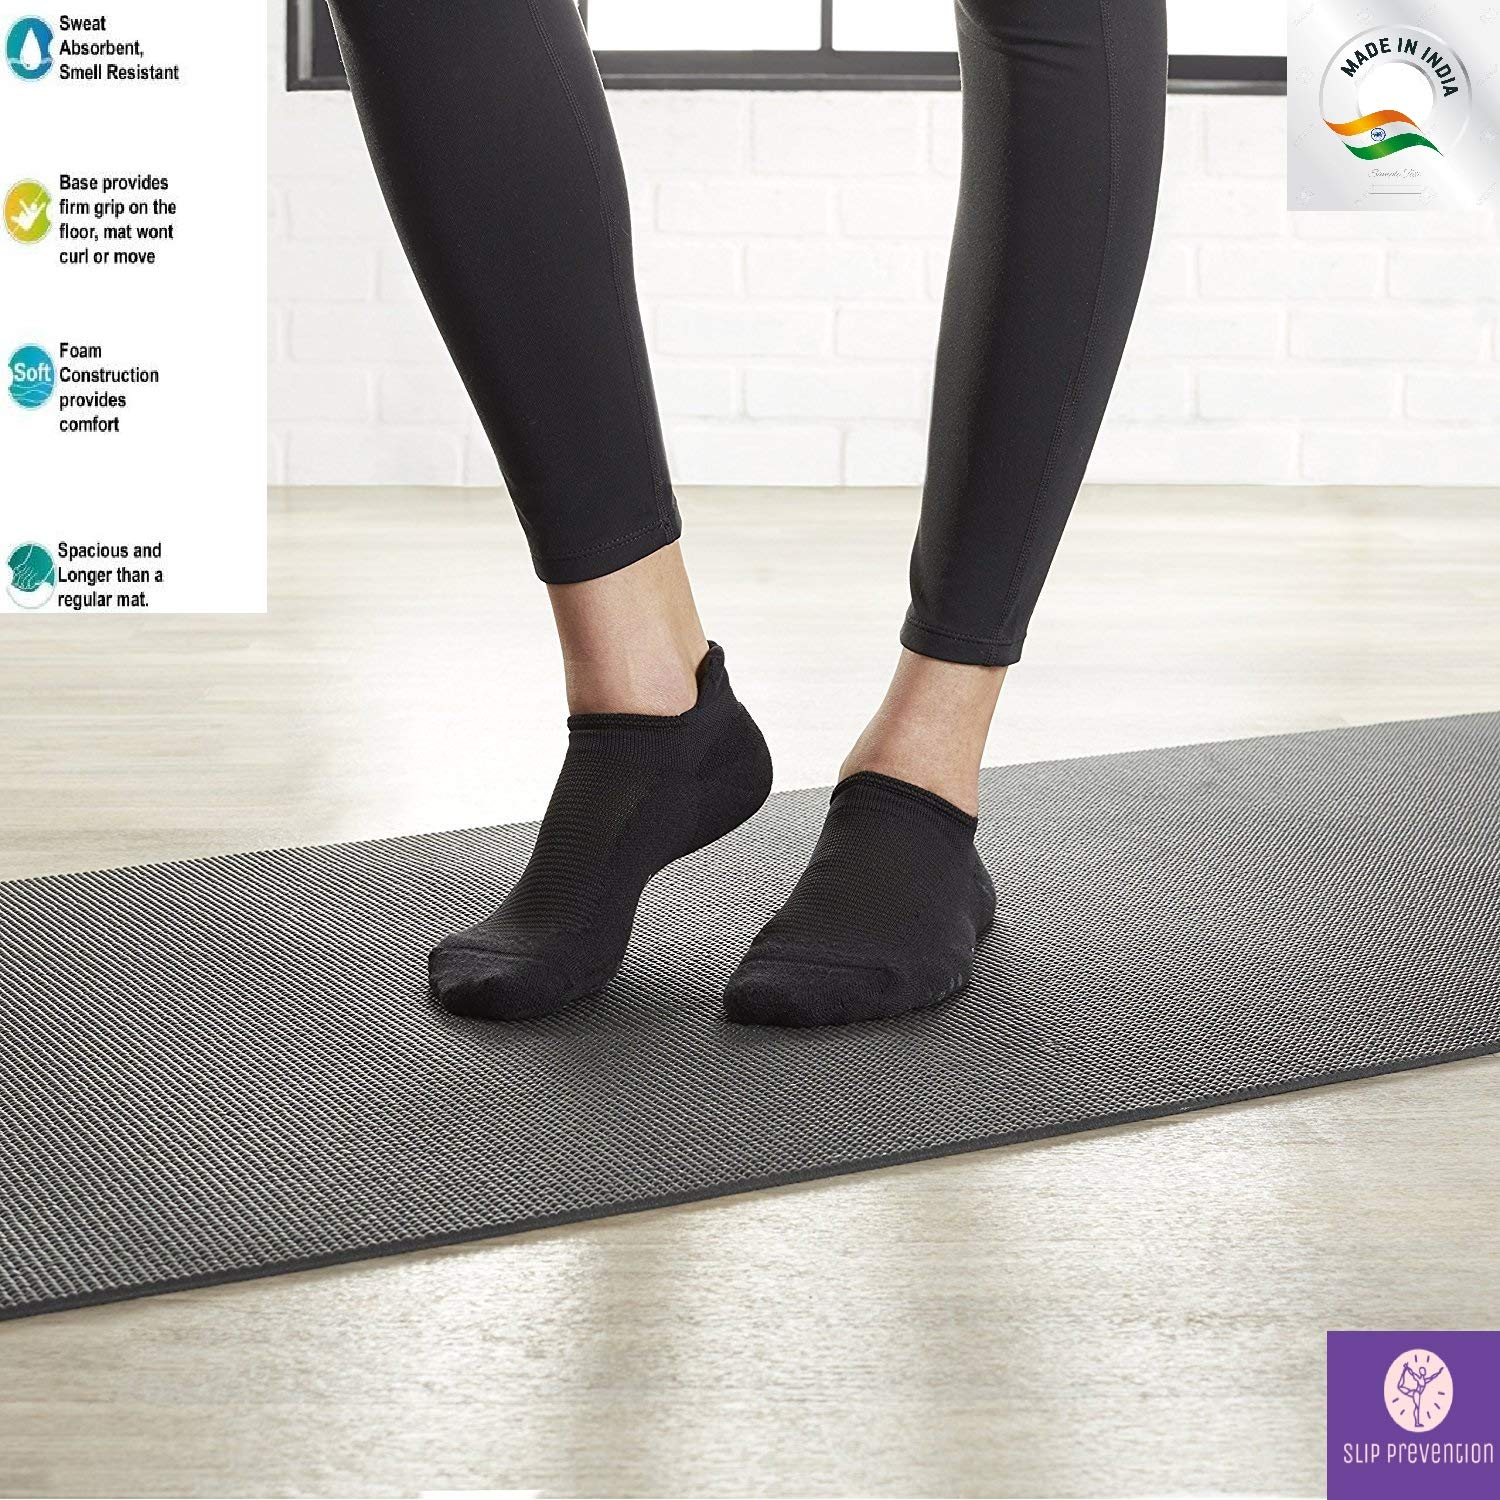 Buy Yoga Mats Online India 2020 in Best Prices 1